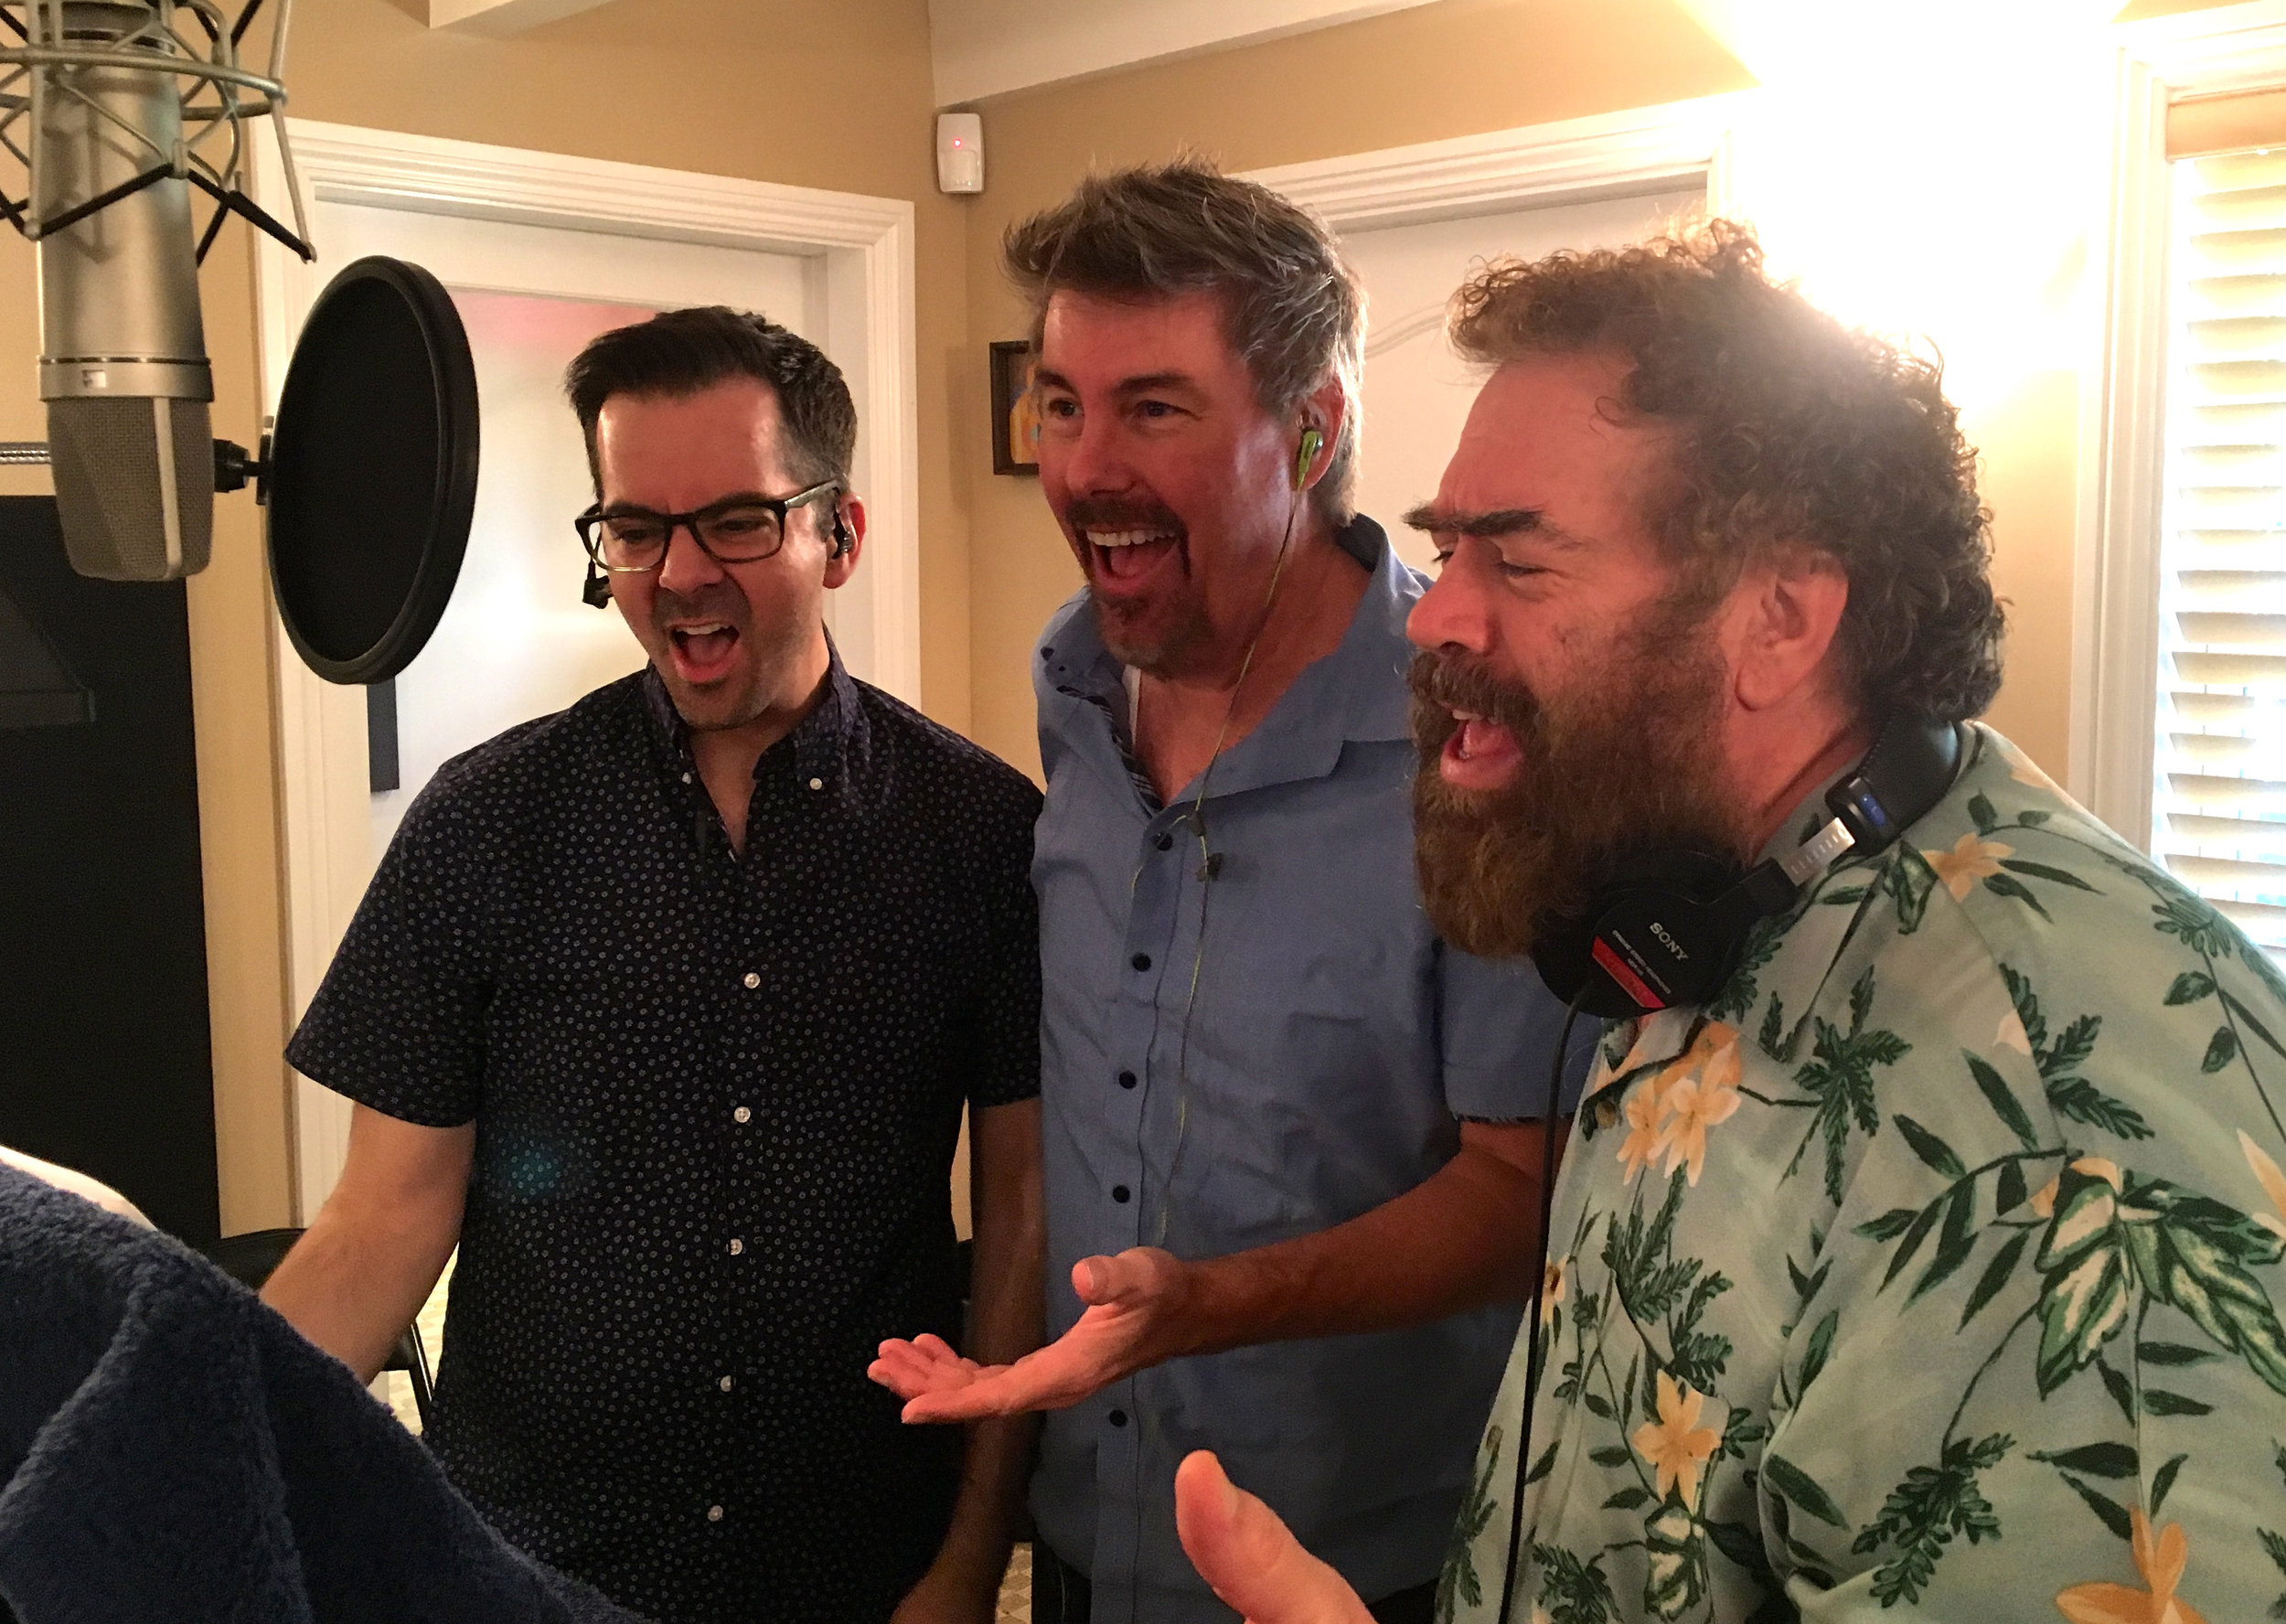 Singing dudes: Fletcher Sheridan, Jeff Gunn, Randy Crenshaw